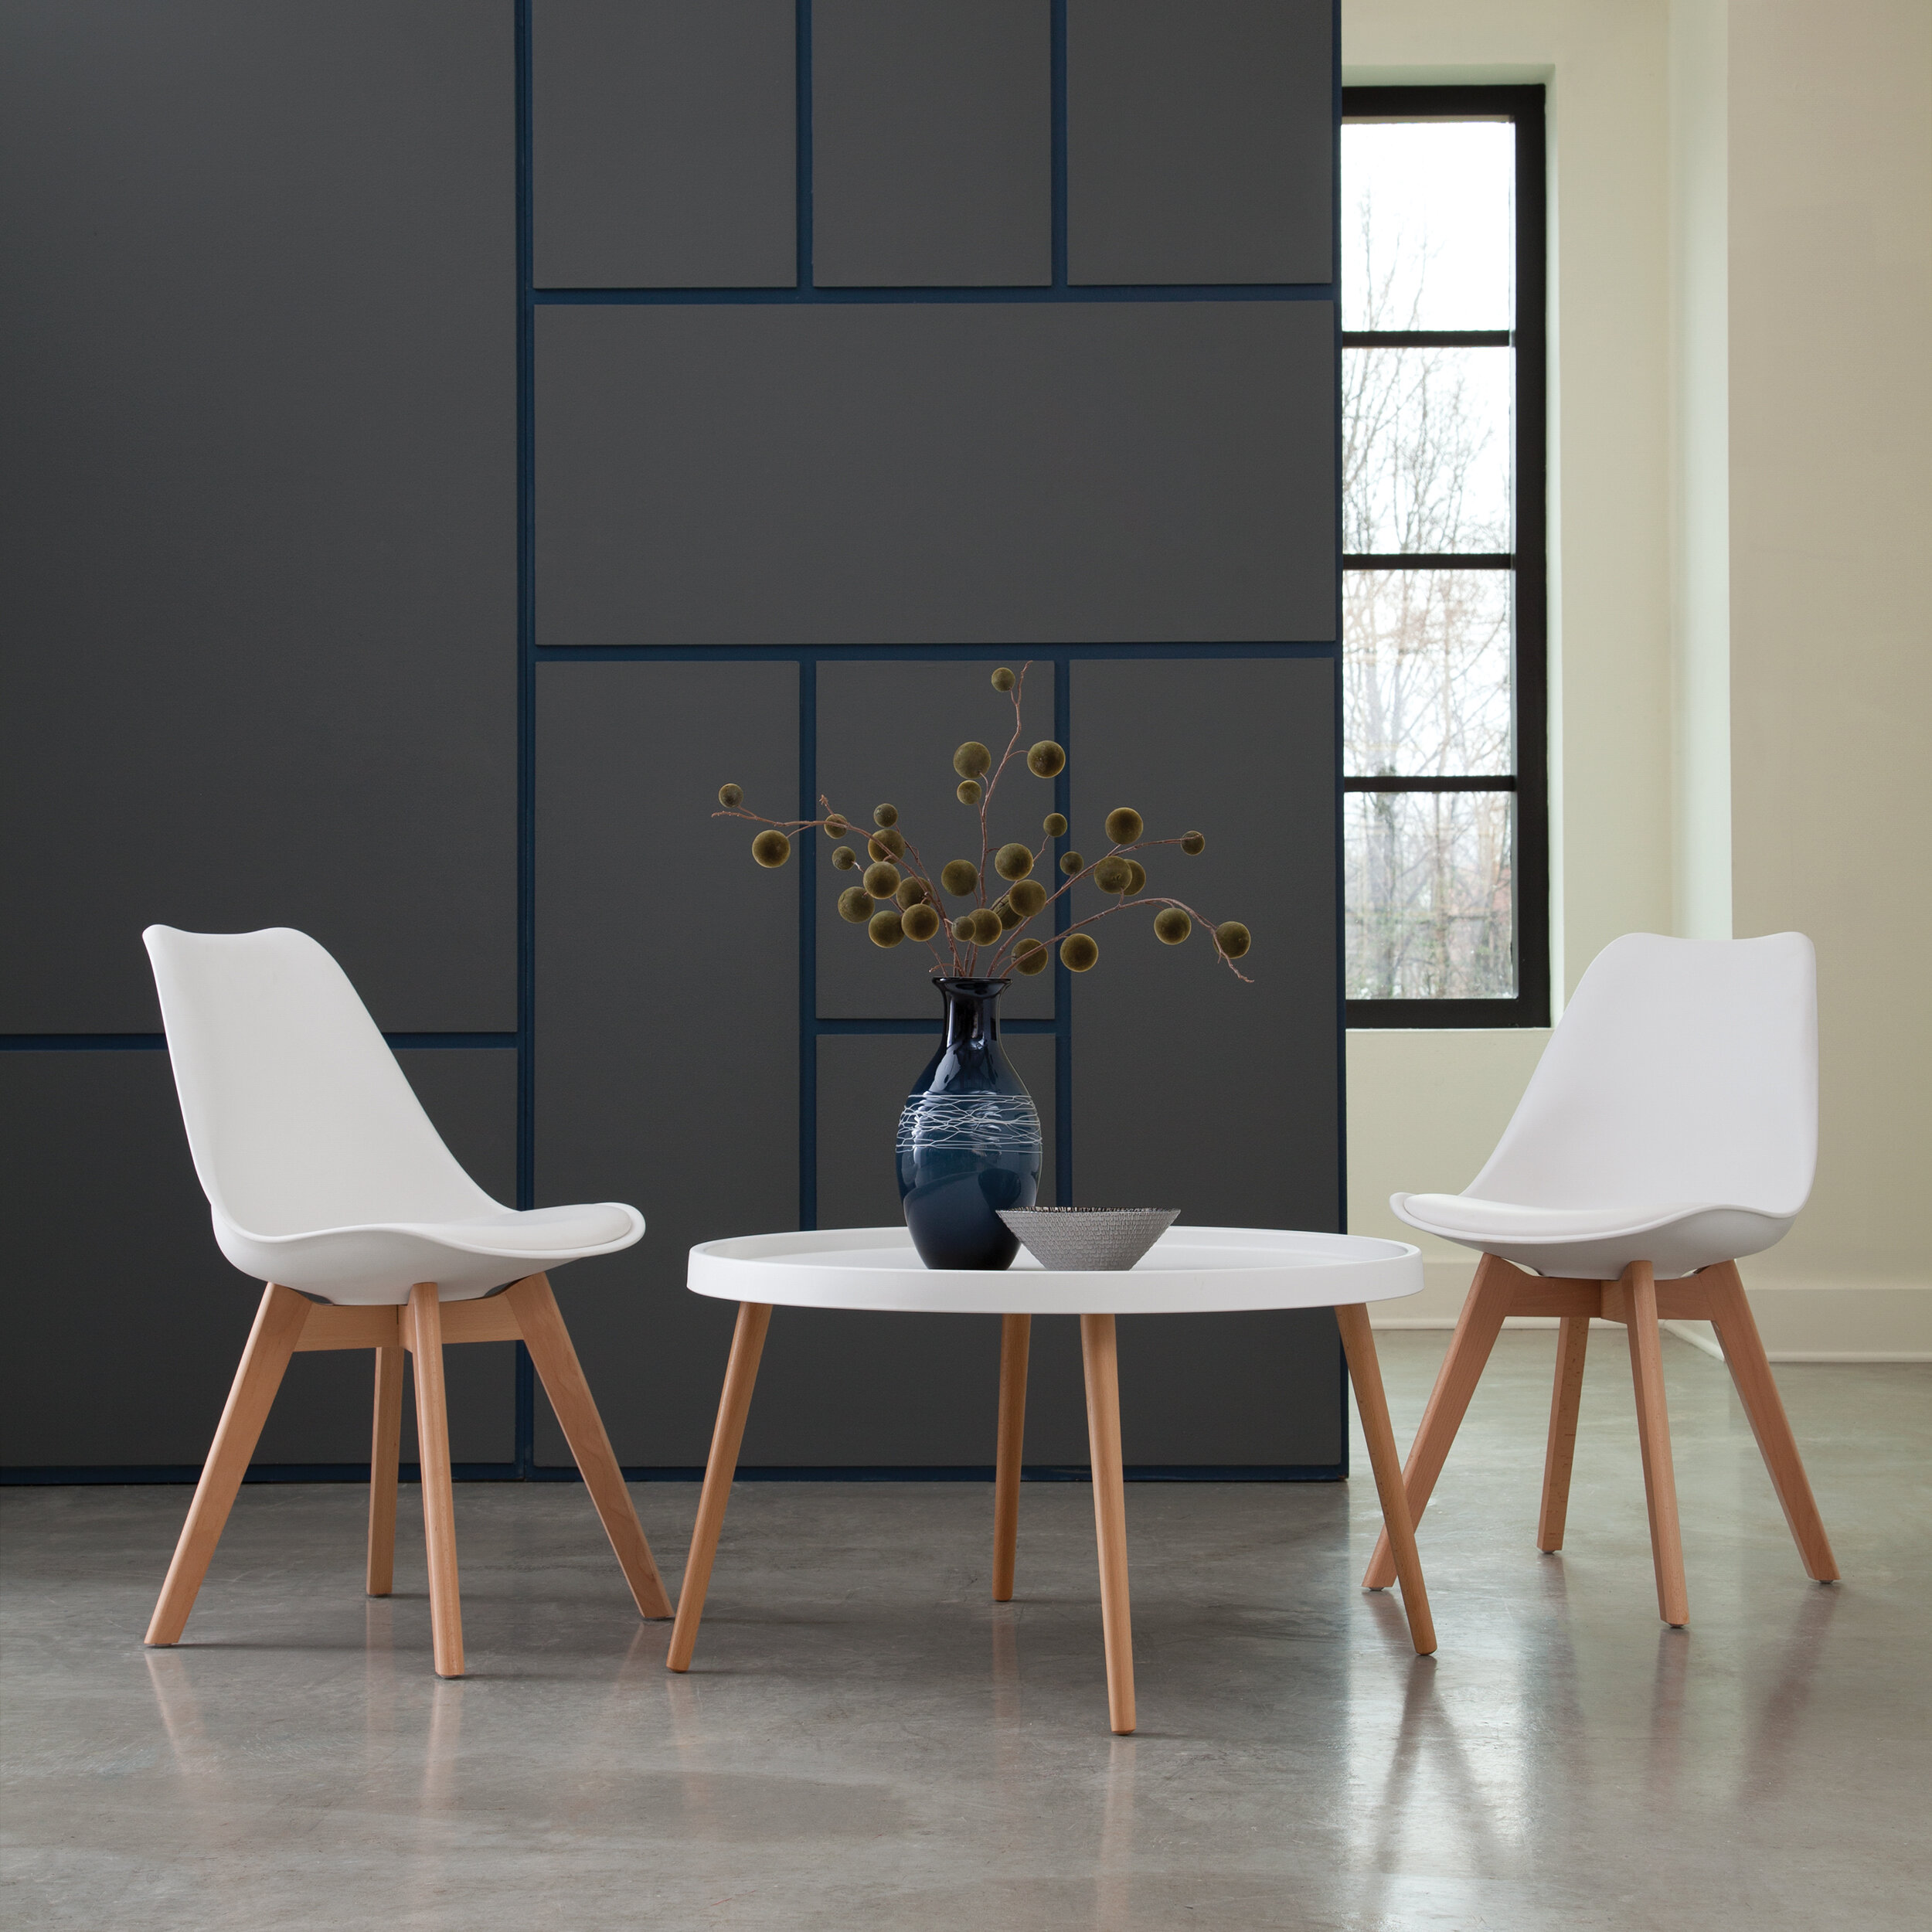 George Oliver 161 Collection Mid Century Modern 18 Plastic Moulded Dining Chairs With Vinyl Seat Cushion Solid Beechwood Legs 2 Pack In Black Ab725d9198d746509b7ba0dc6d2c0353 Reviews Wayfair Ca